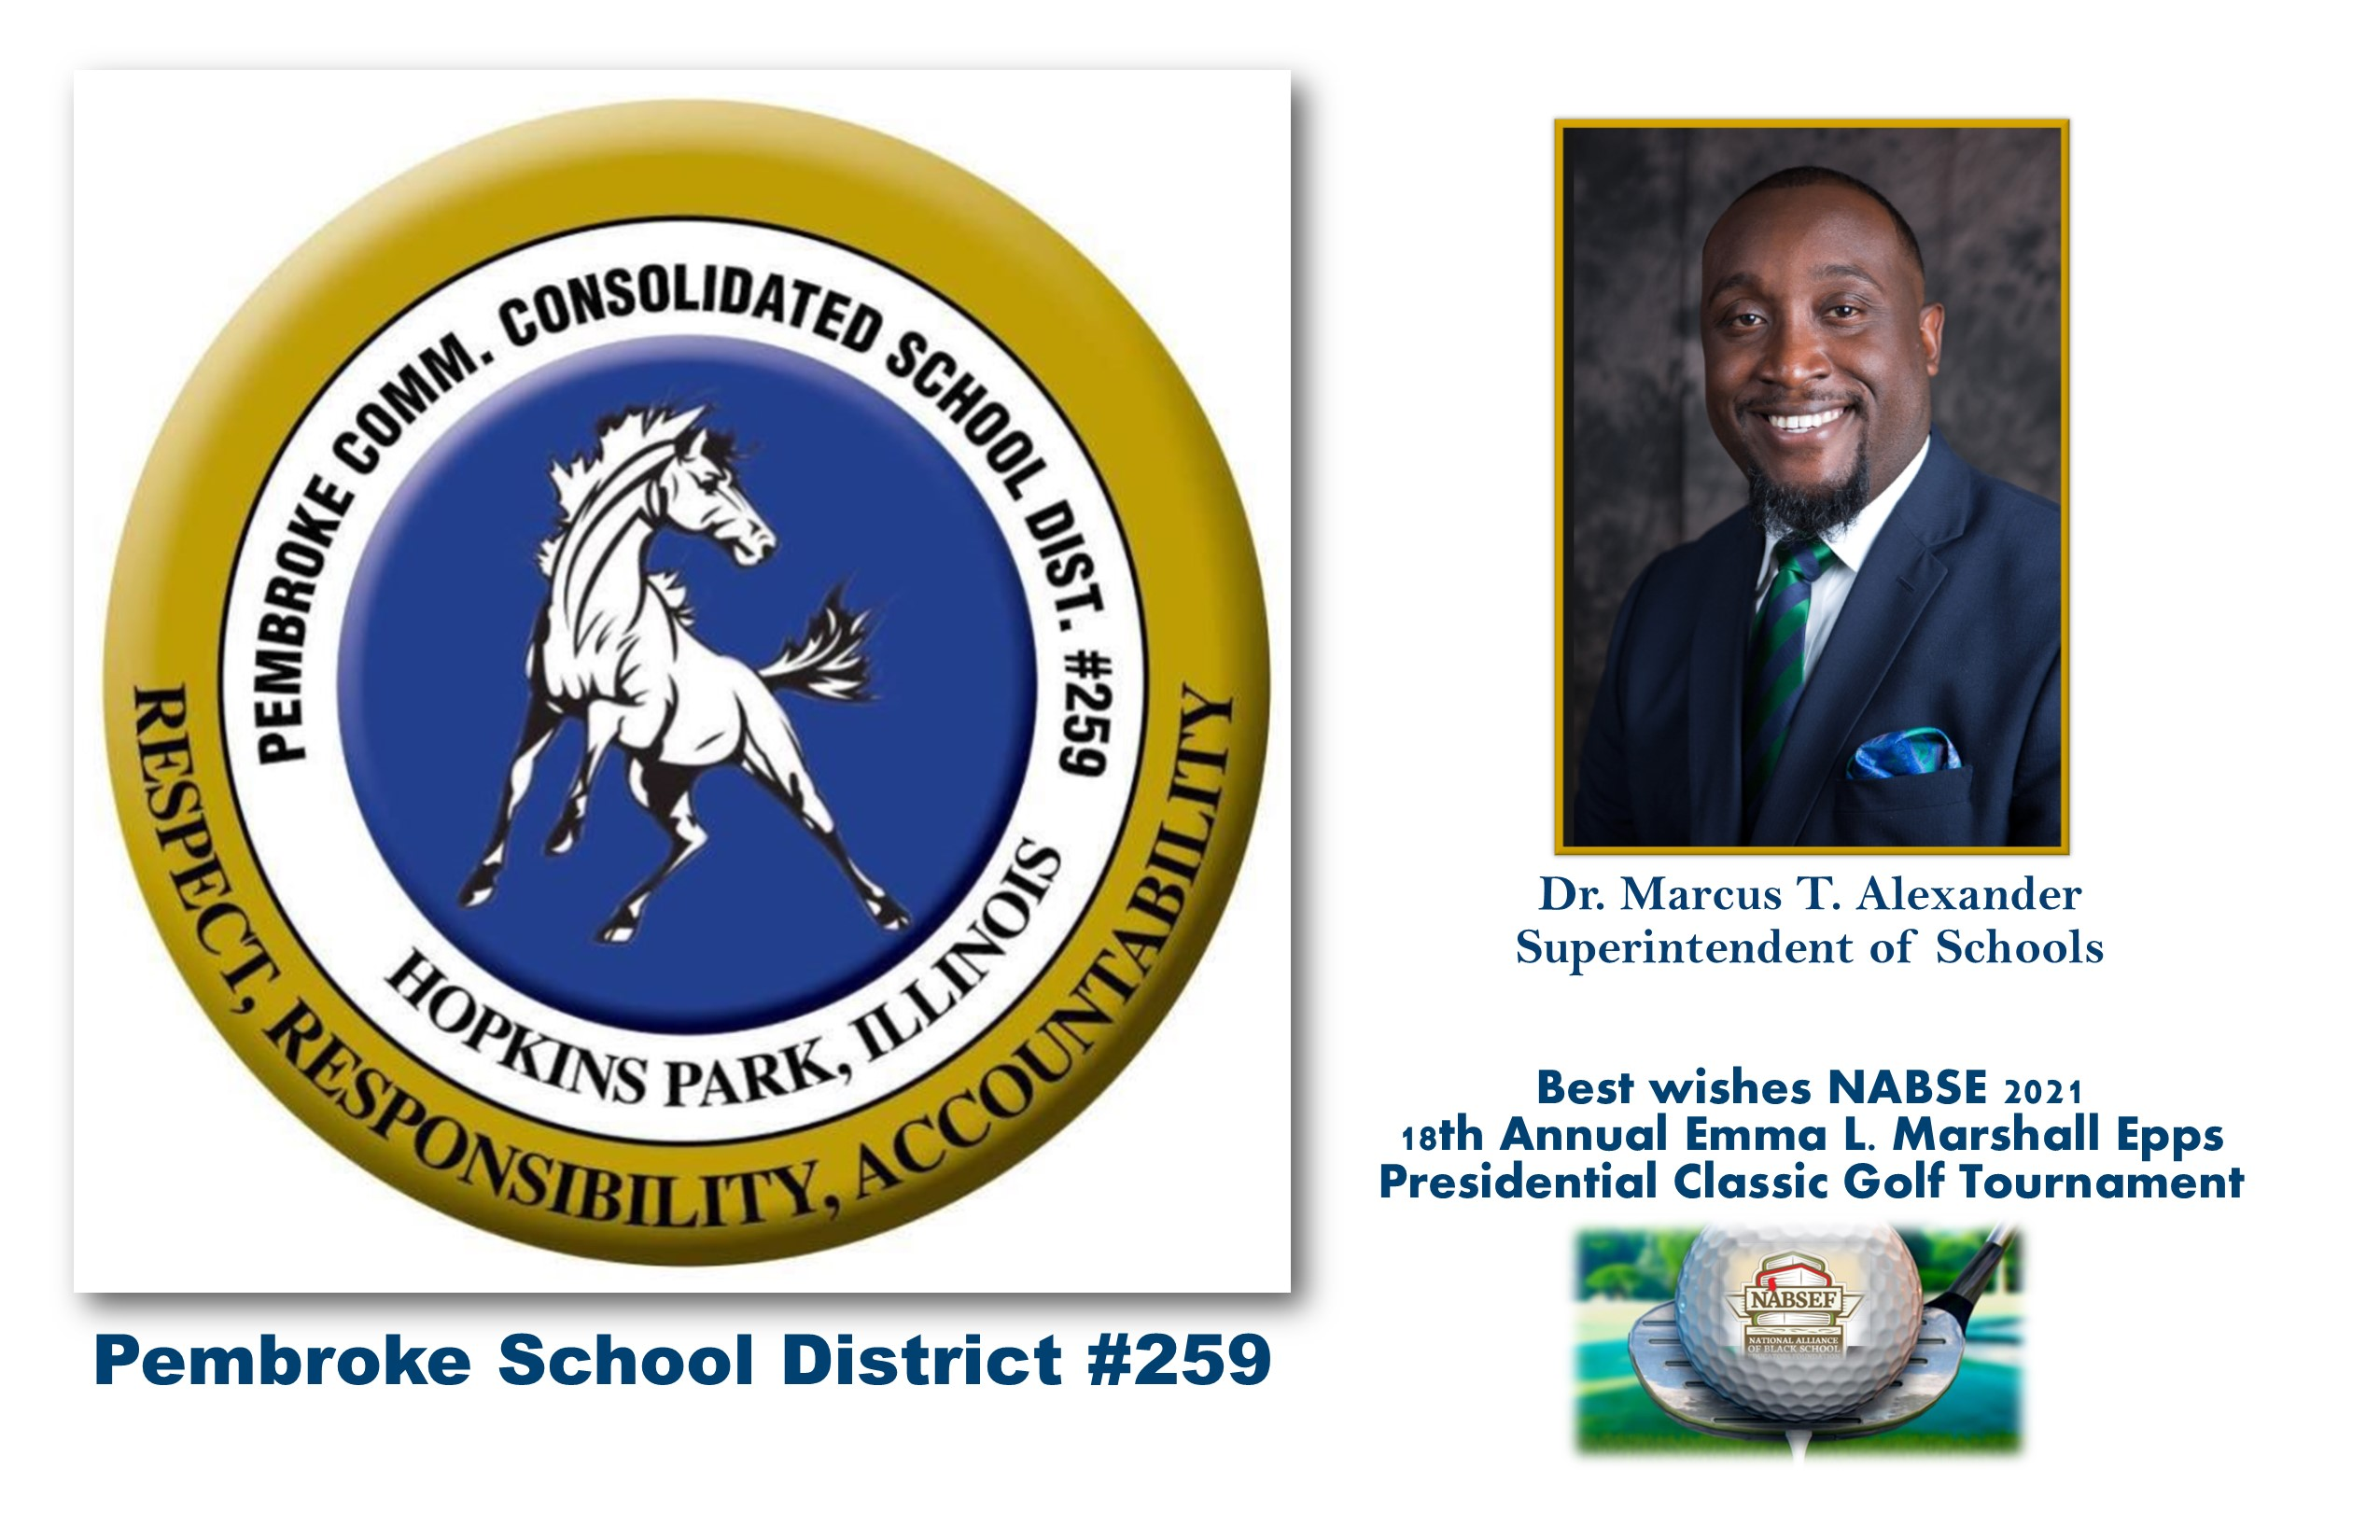 Pembroke Comm. Consolidated School District and Dr. Marcus T. Alexander, Superintendent of Schools